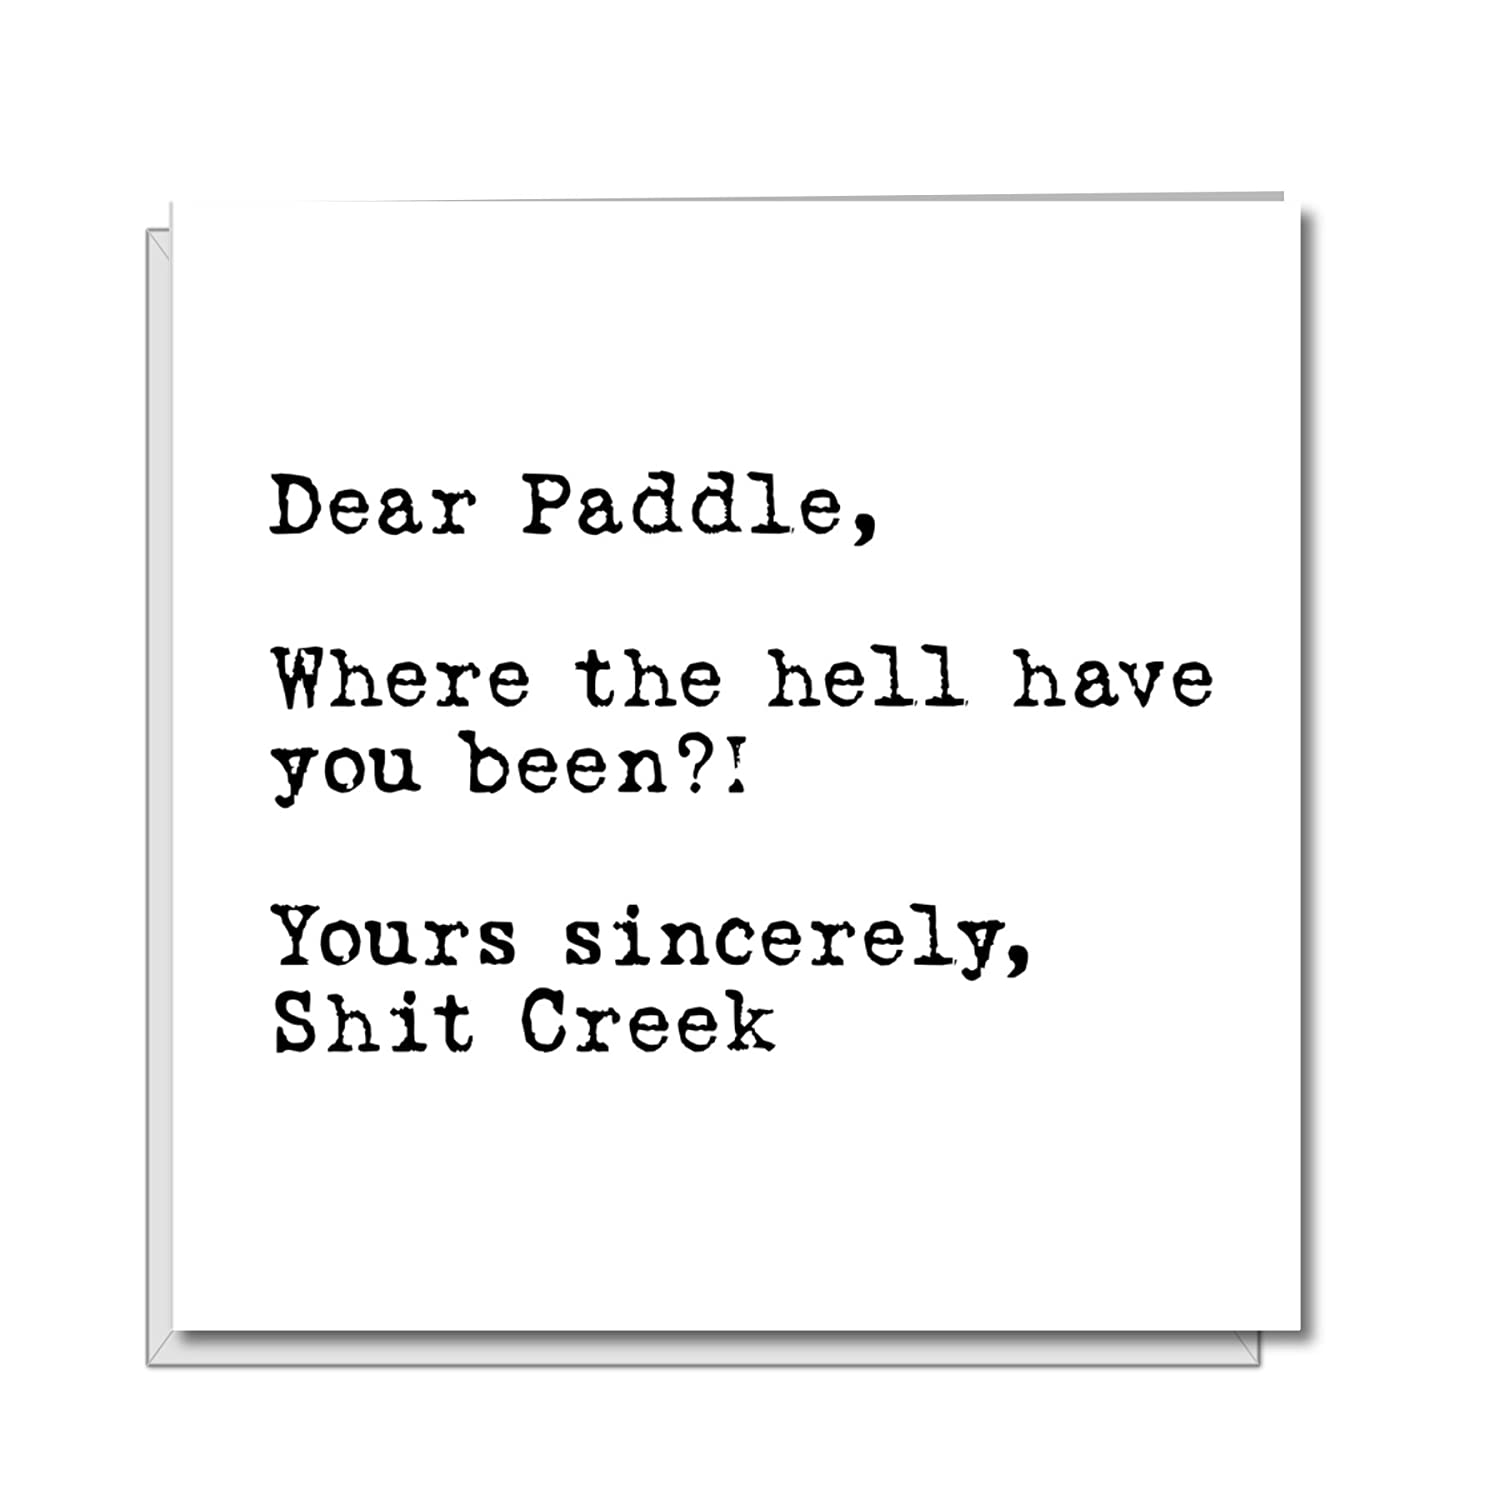 FUNNY CARD Birthday Boss Work Employee Family Friend Sh*t Creek Paddle Quote Pun Proverb